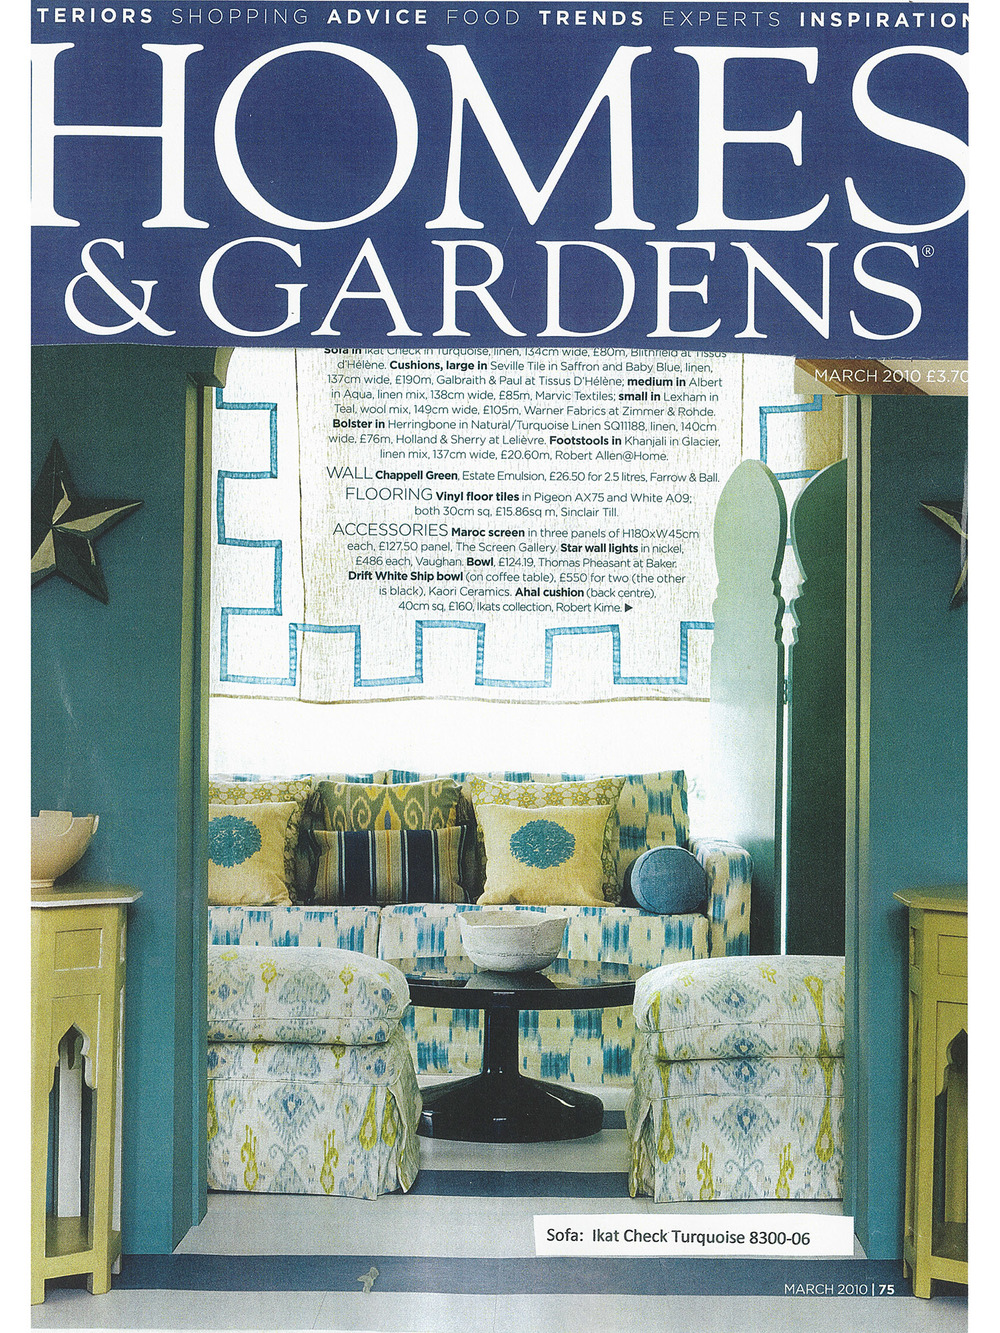 2010 March-Homes & Gardens.jpeg